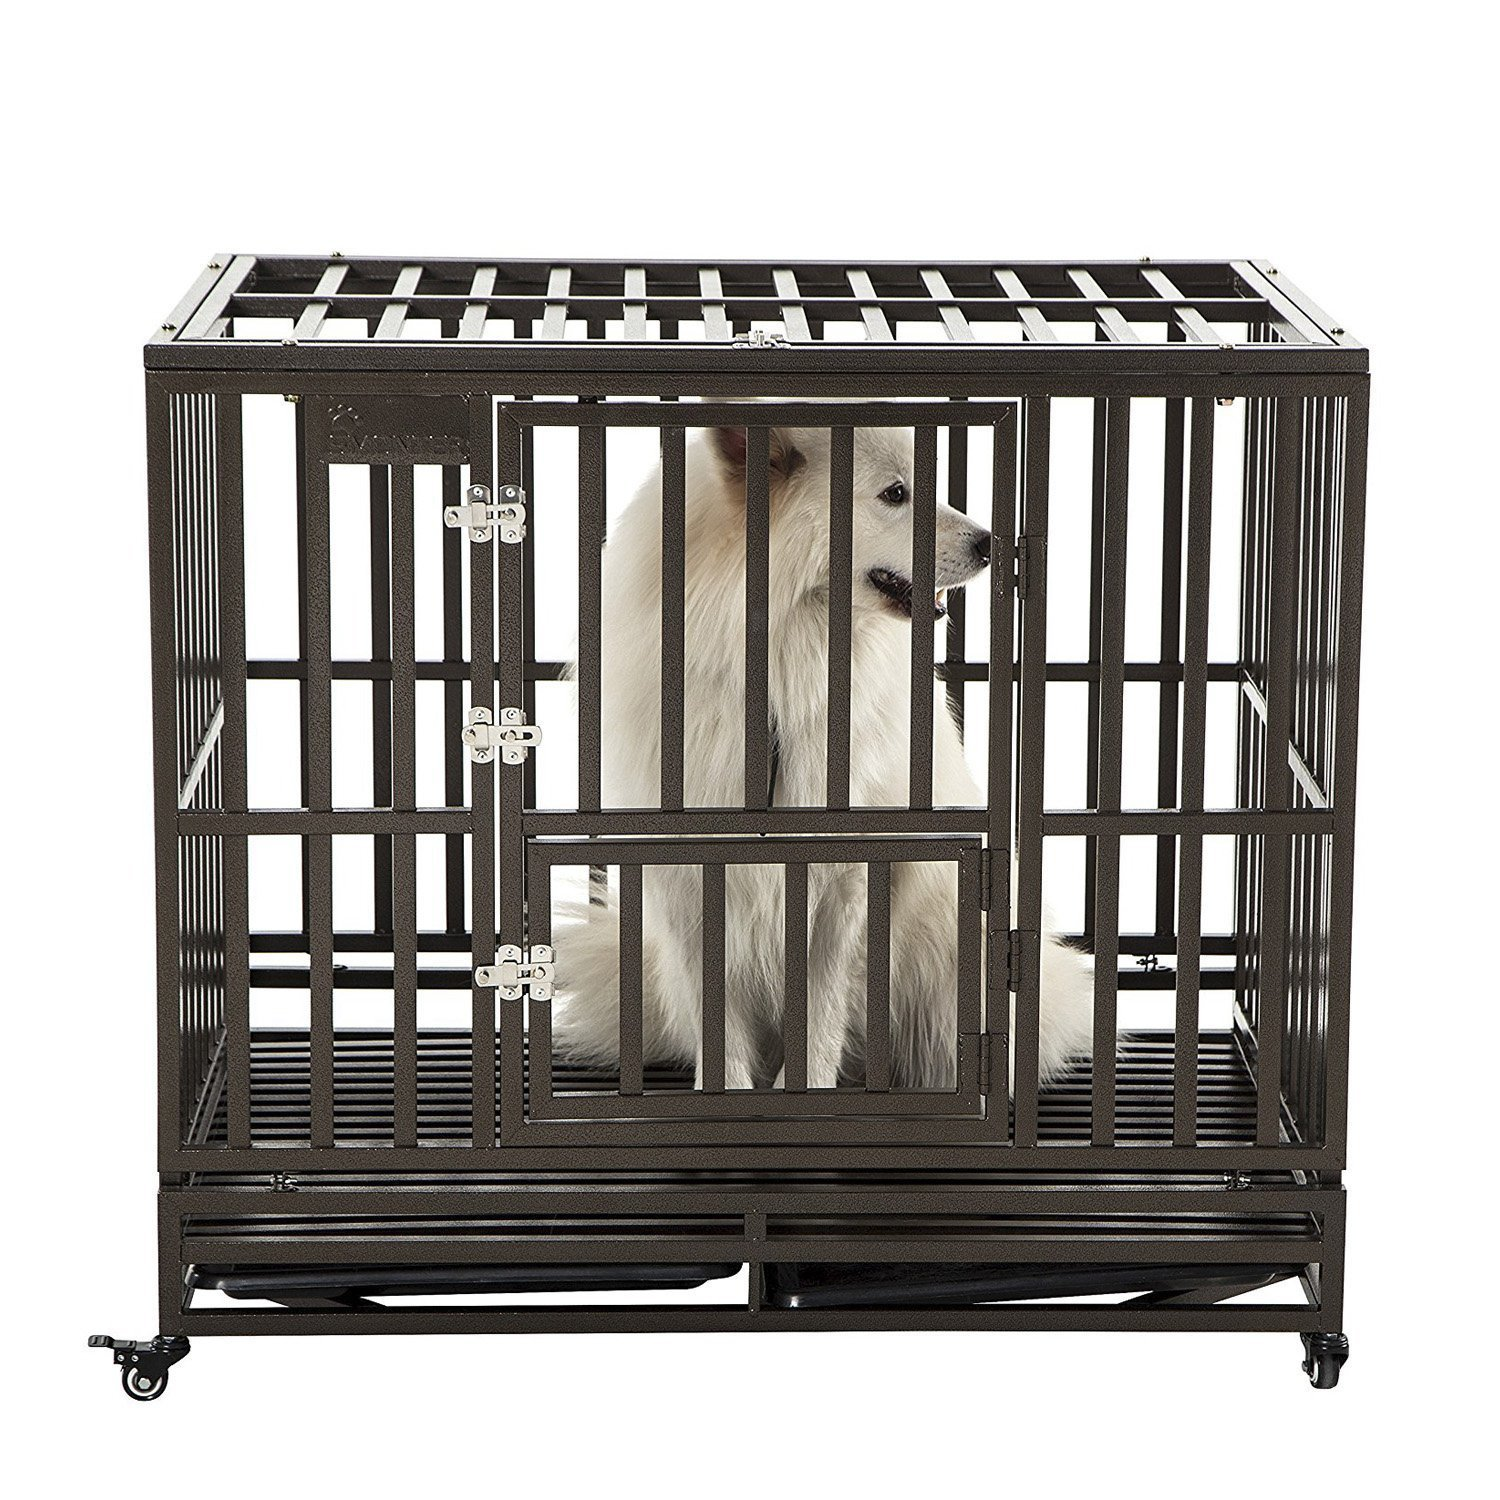 smonter-heavy-duty-dog-crate